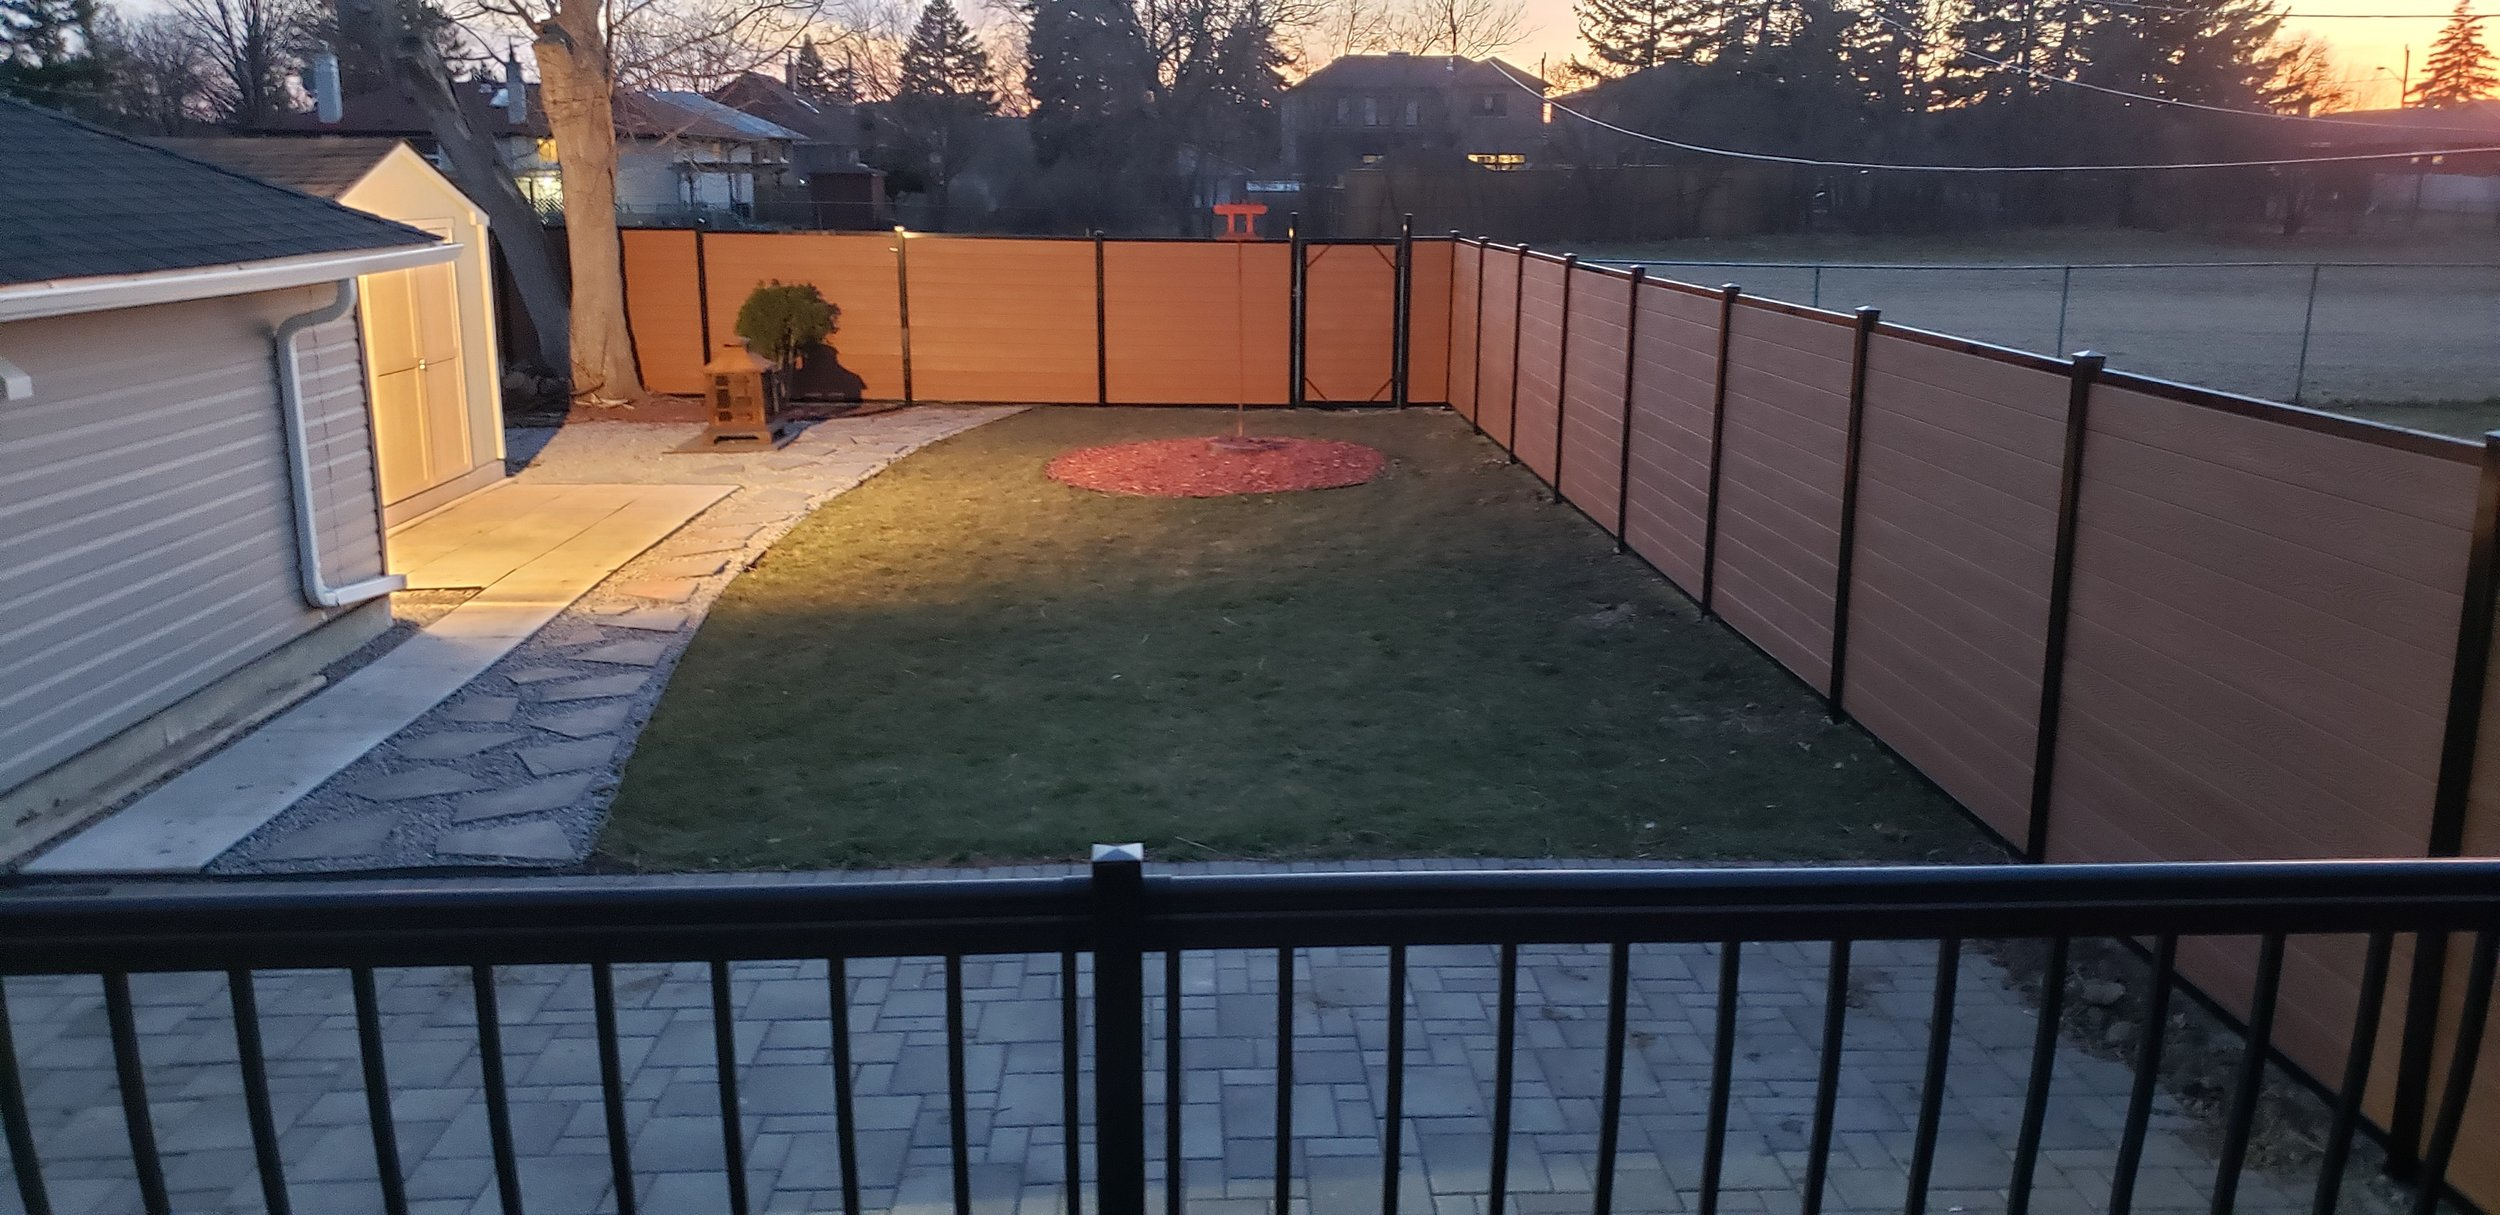 We Supply & Install Canadian Made Composite Decks & Fences. Don't Be Fooled By Slightly Lower Prices On Cheap Imports. You Get What You Pay For. - We Are Proud And Confident In The Fact That We Offer The Highest Quality Composite Decks & Fences In Ontario, Guaranteed! Before You Purchase Your Next Composite Fence Or Deck, You Must Compare Products.